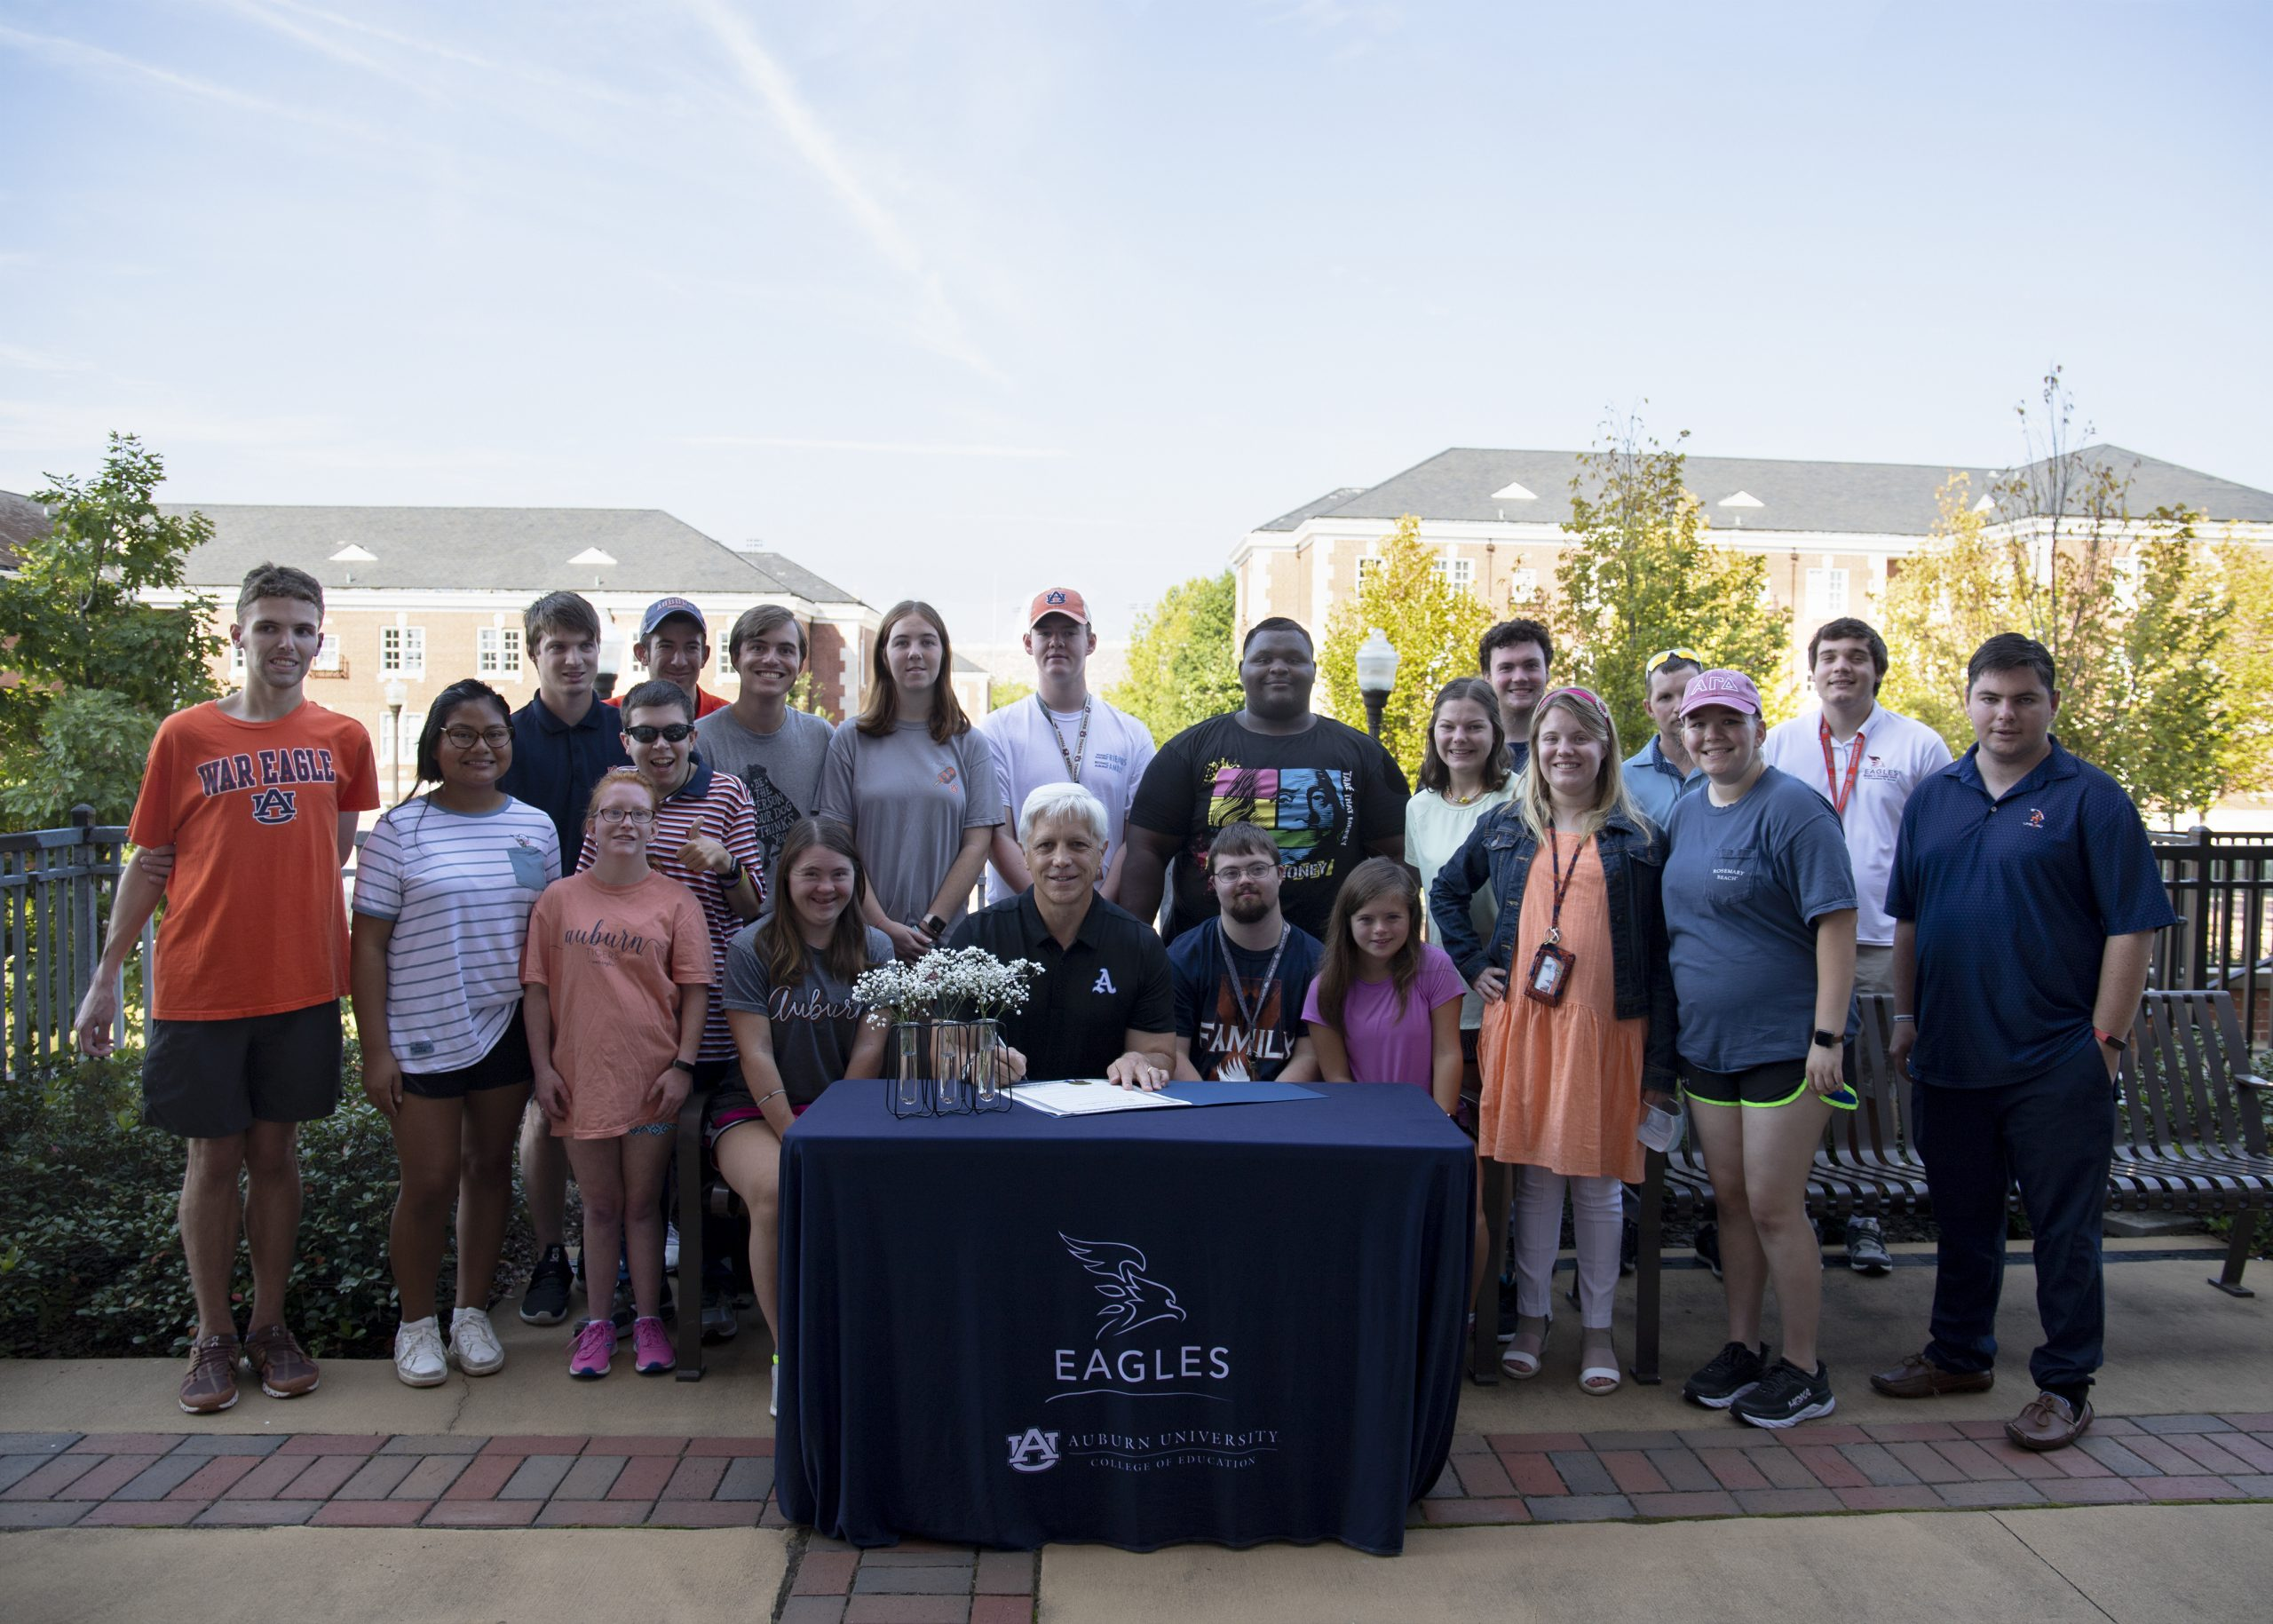 EAGLES students with mayor at signing